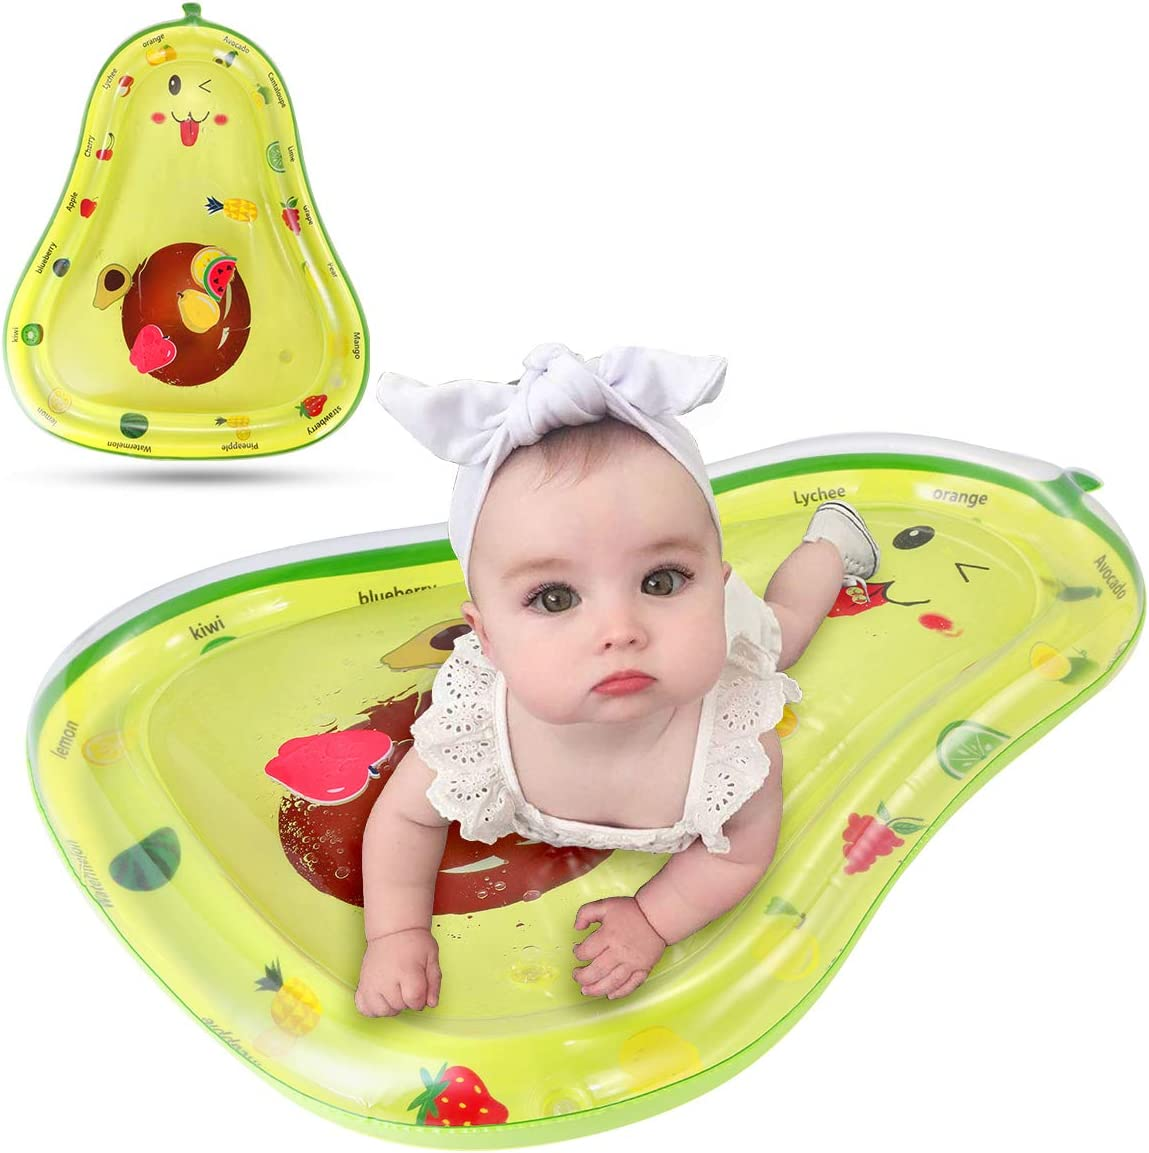 Wallfire Baby Inflatable Water Mat Infants Toddlers Tummy Time Play Mat Toy for 3 6 9 Months Newborn Boy Girl (Green, 65 x 83cm/25.6 x 32.7inch)